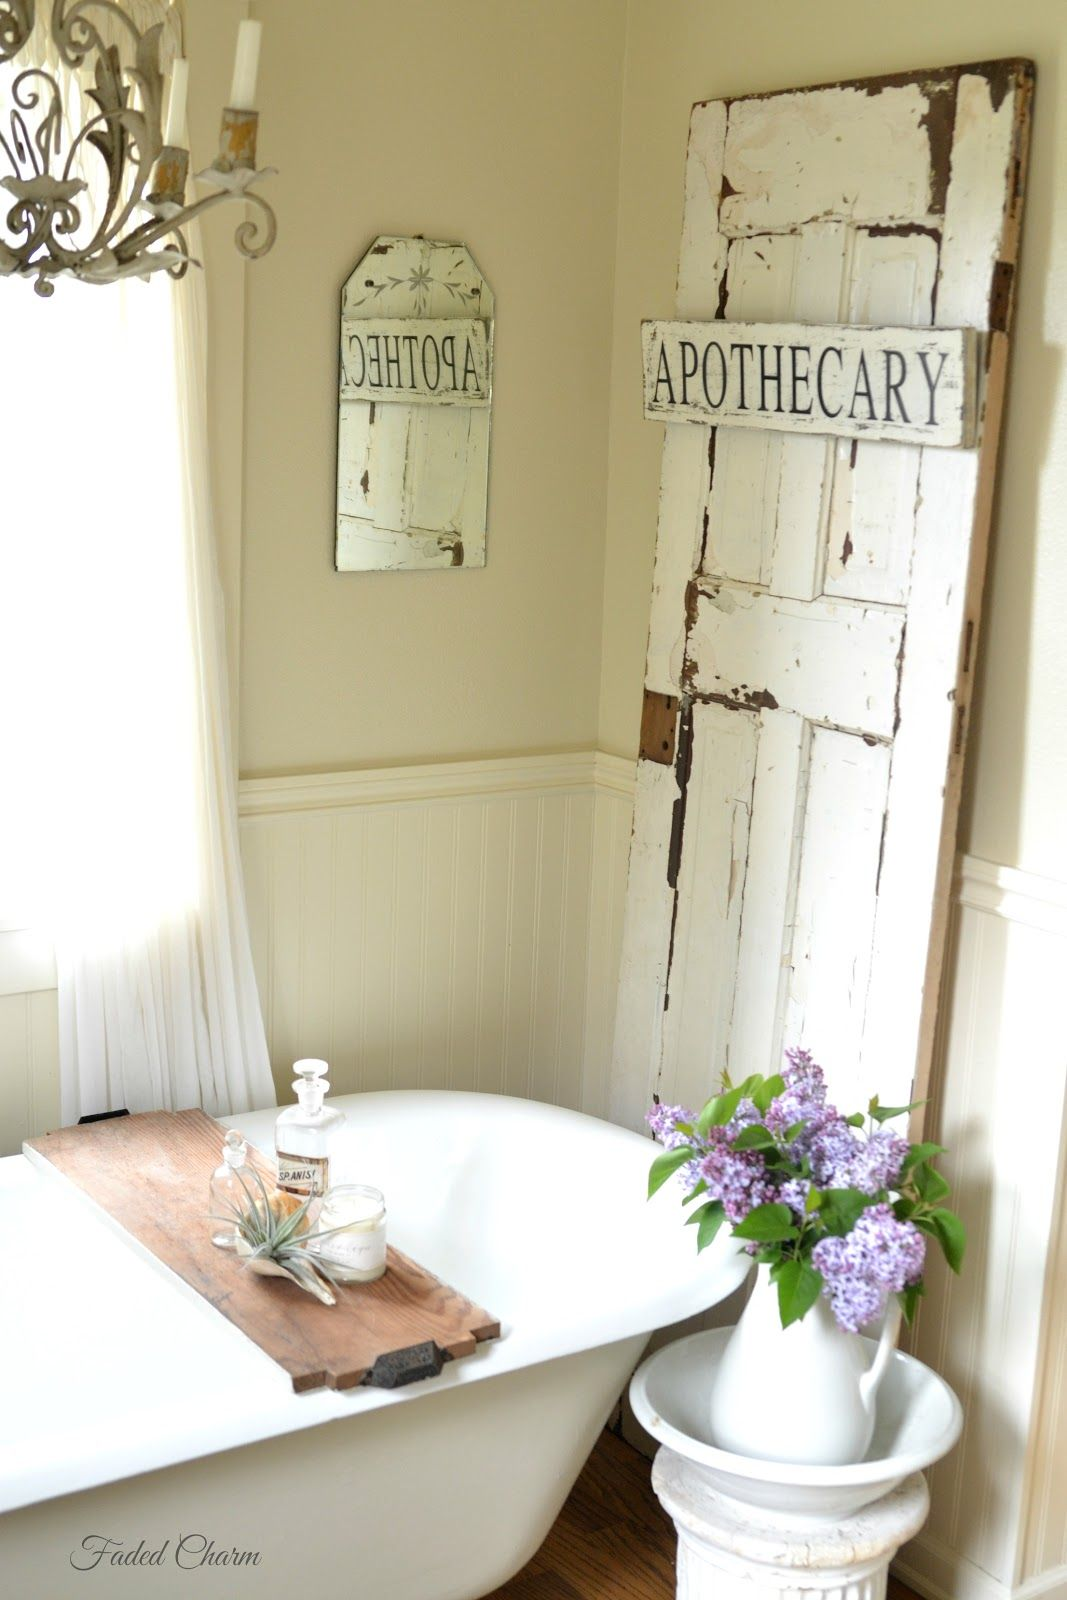 Gorgeous Rustic Farmhouse Bath This Entire Hone Is Amazing With So Many Beyond Beaut Farmhouse Bathroom Accessories Country Bathroom Designs Country Bathroom